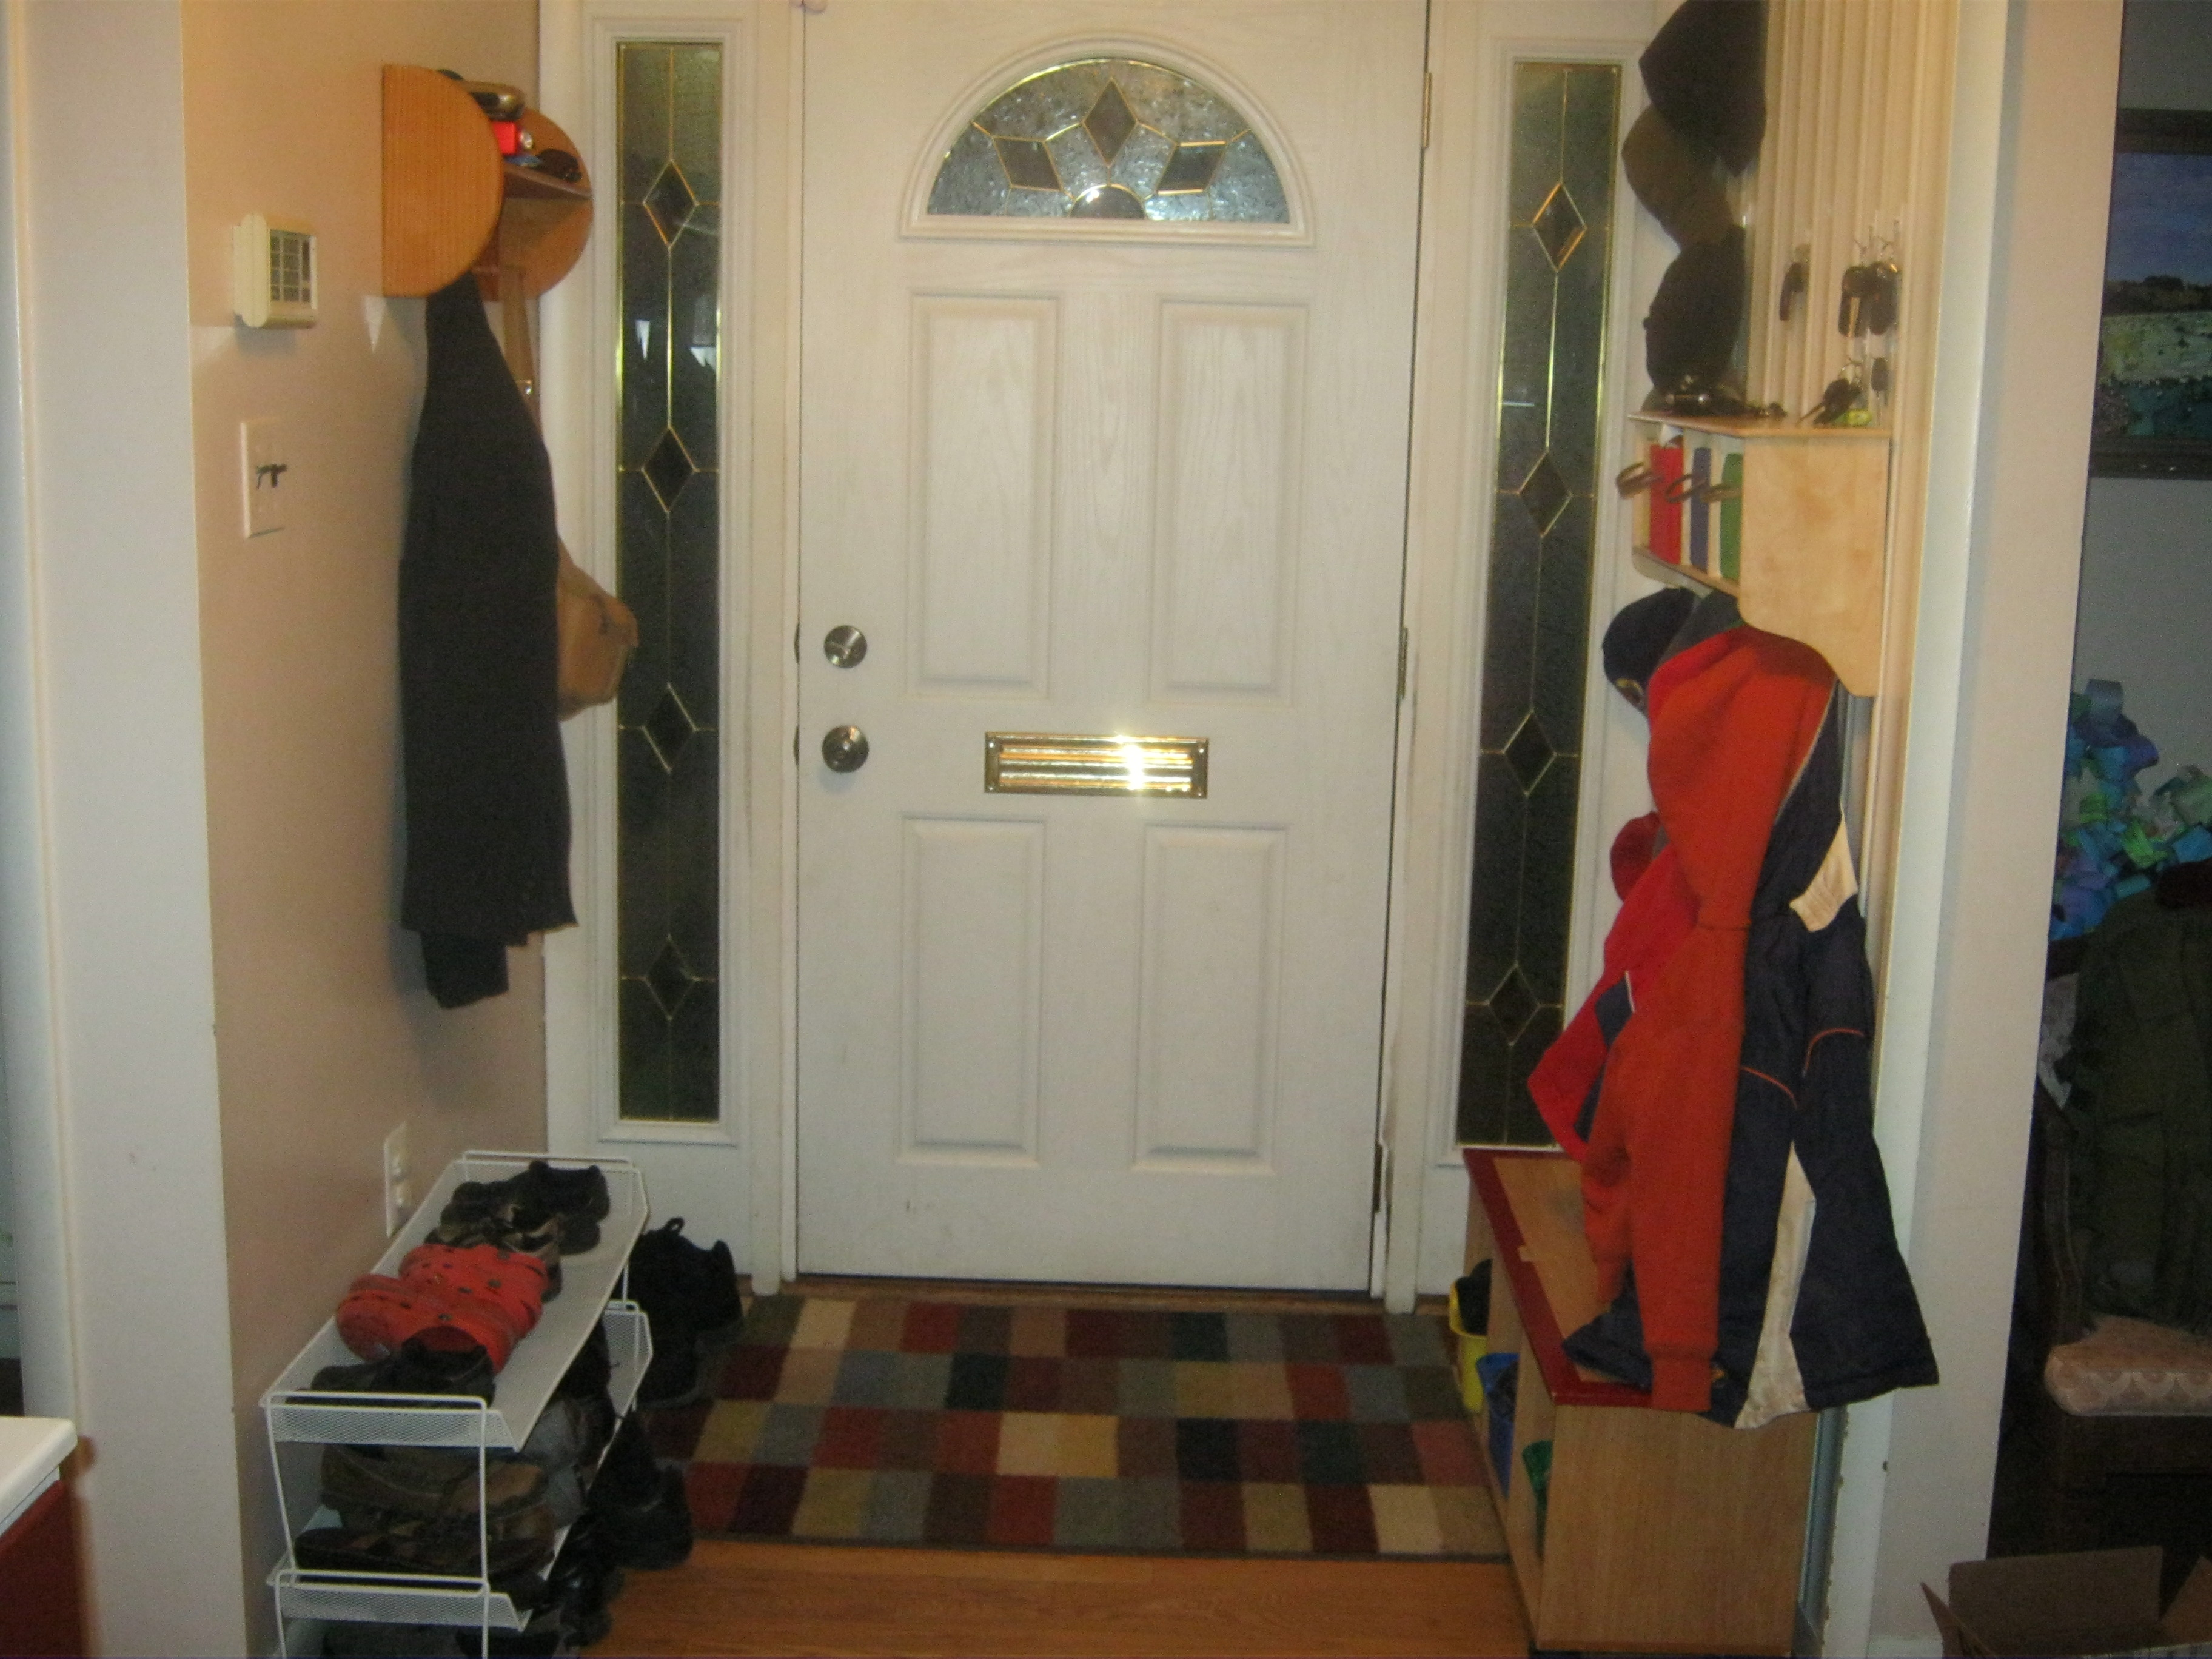 52 week challenge week 3 entryway mudroom organized jewish home